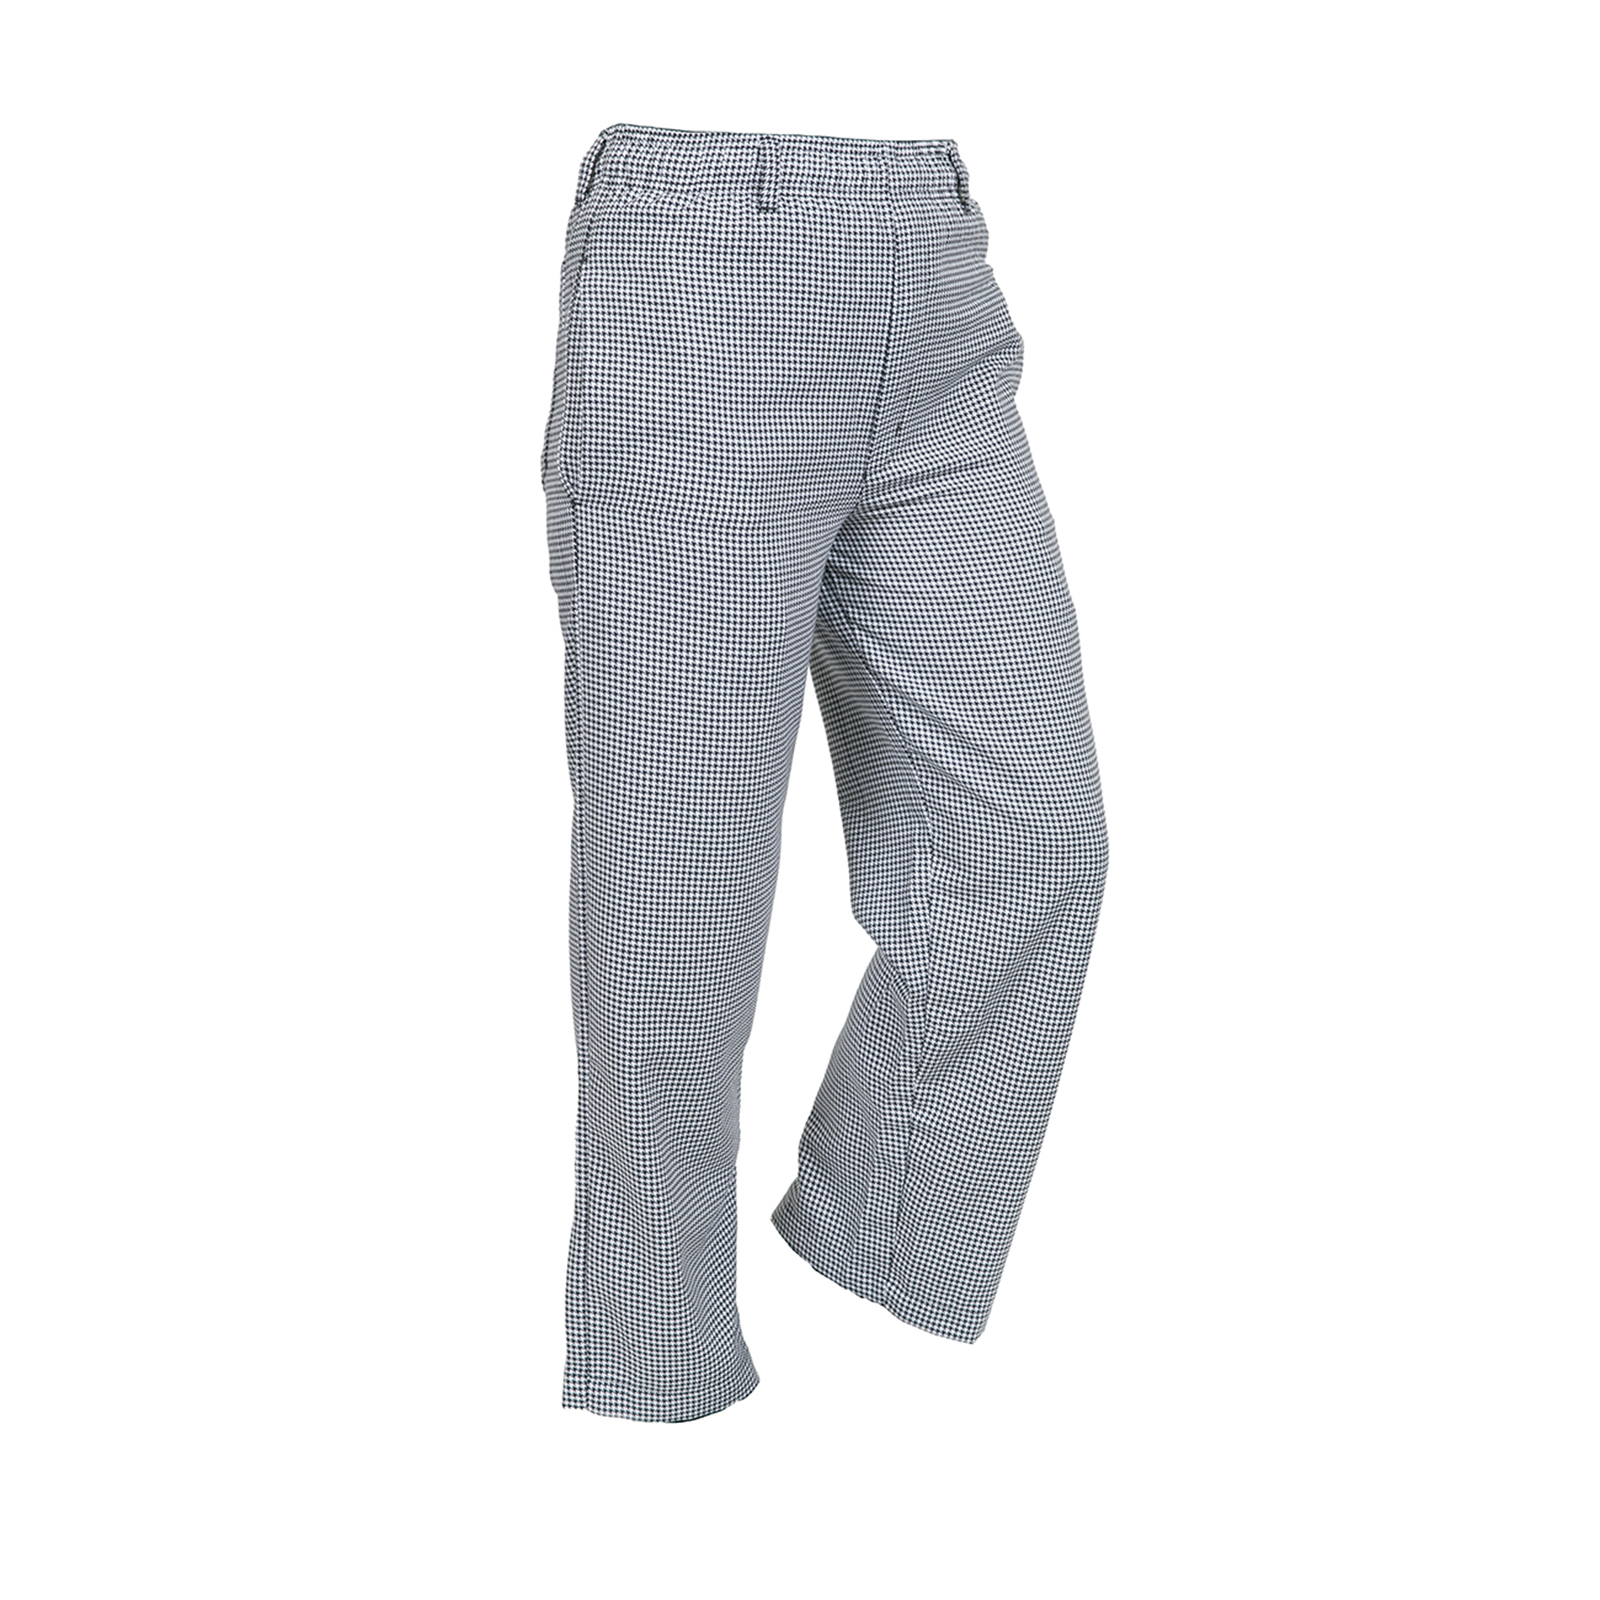 Mercer Culinary M60030HTXS chef's pants